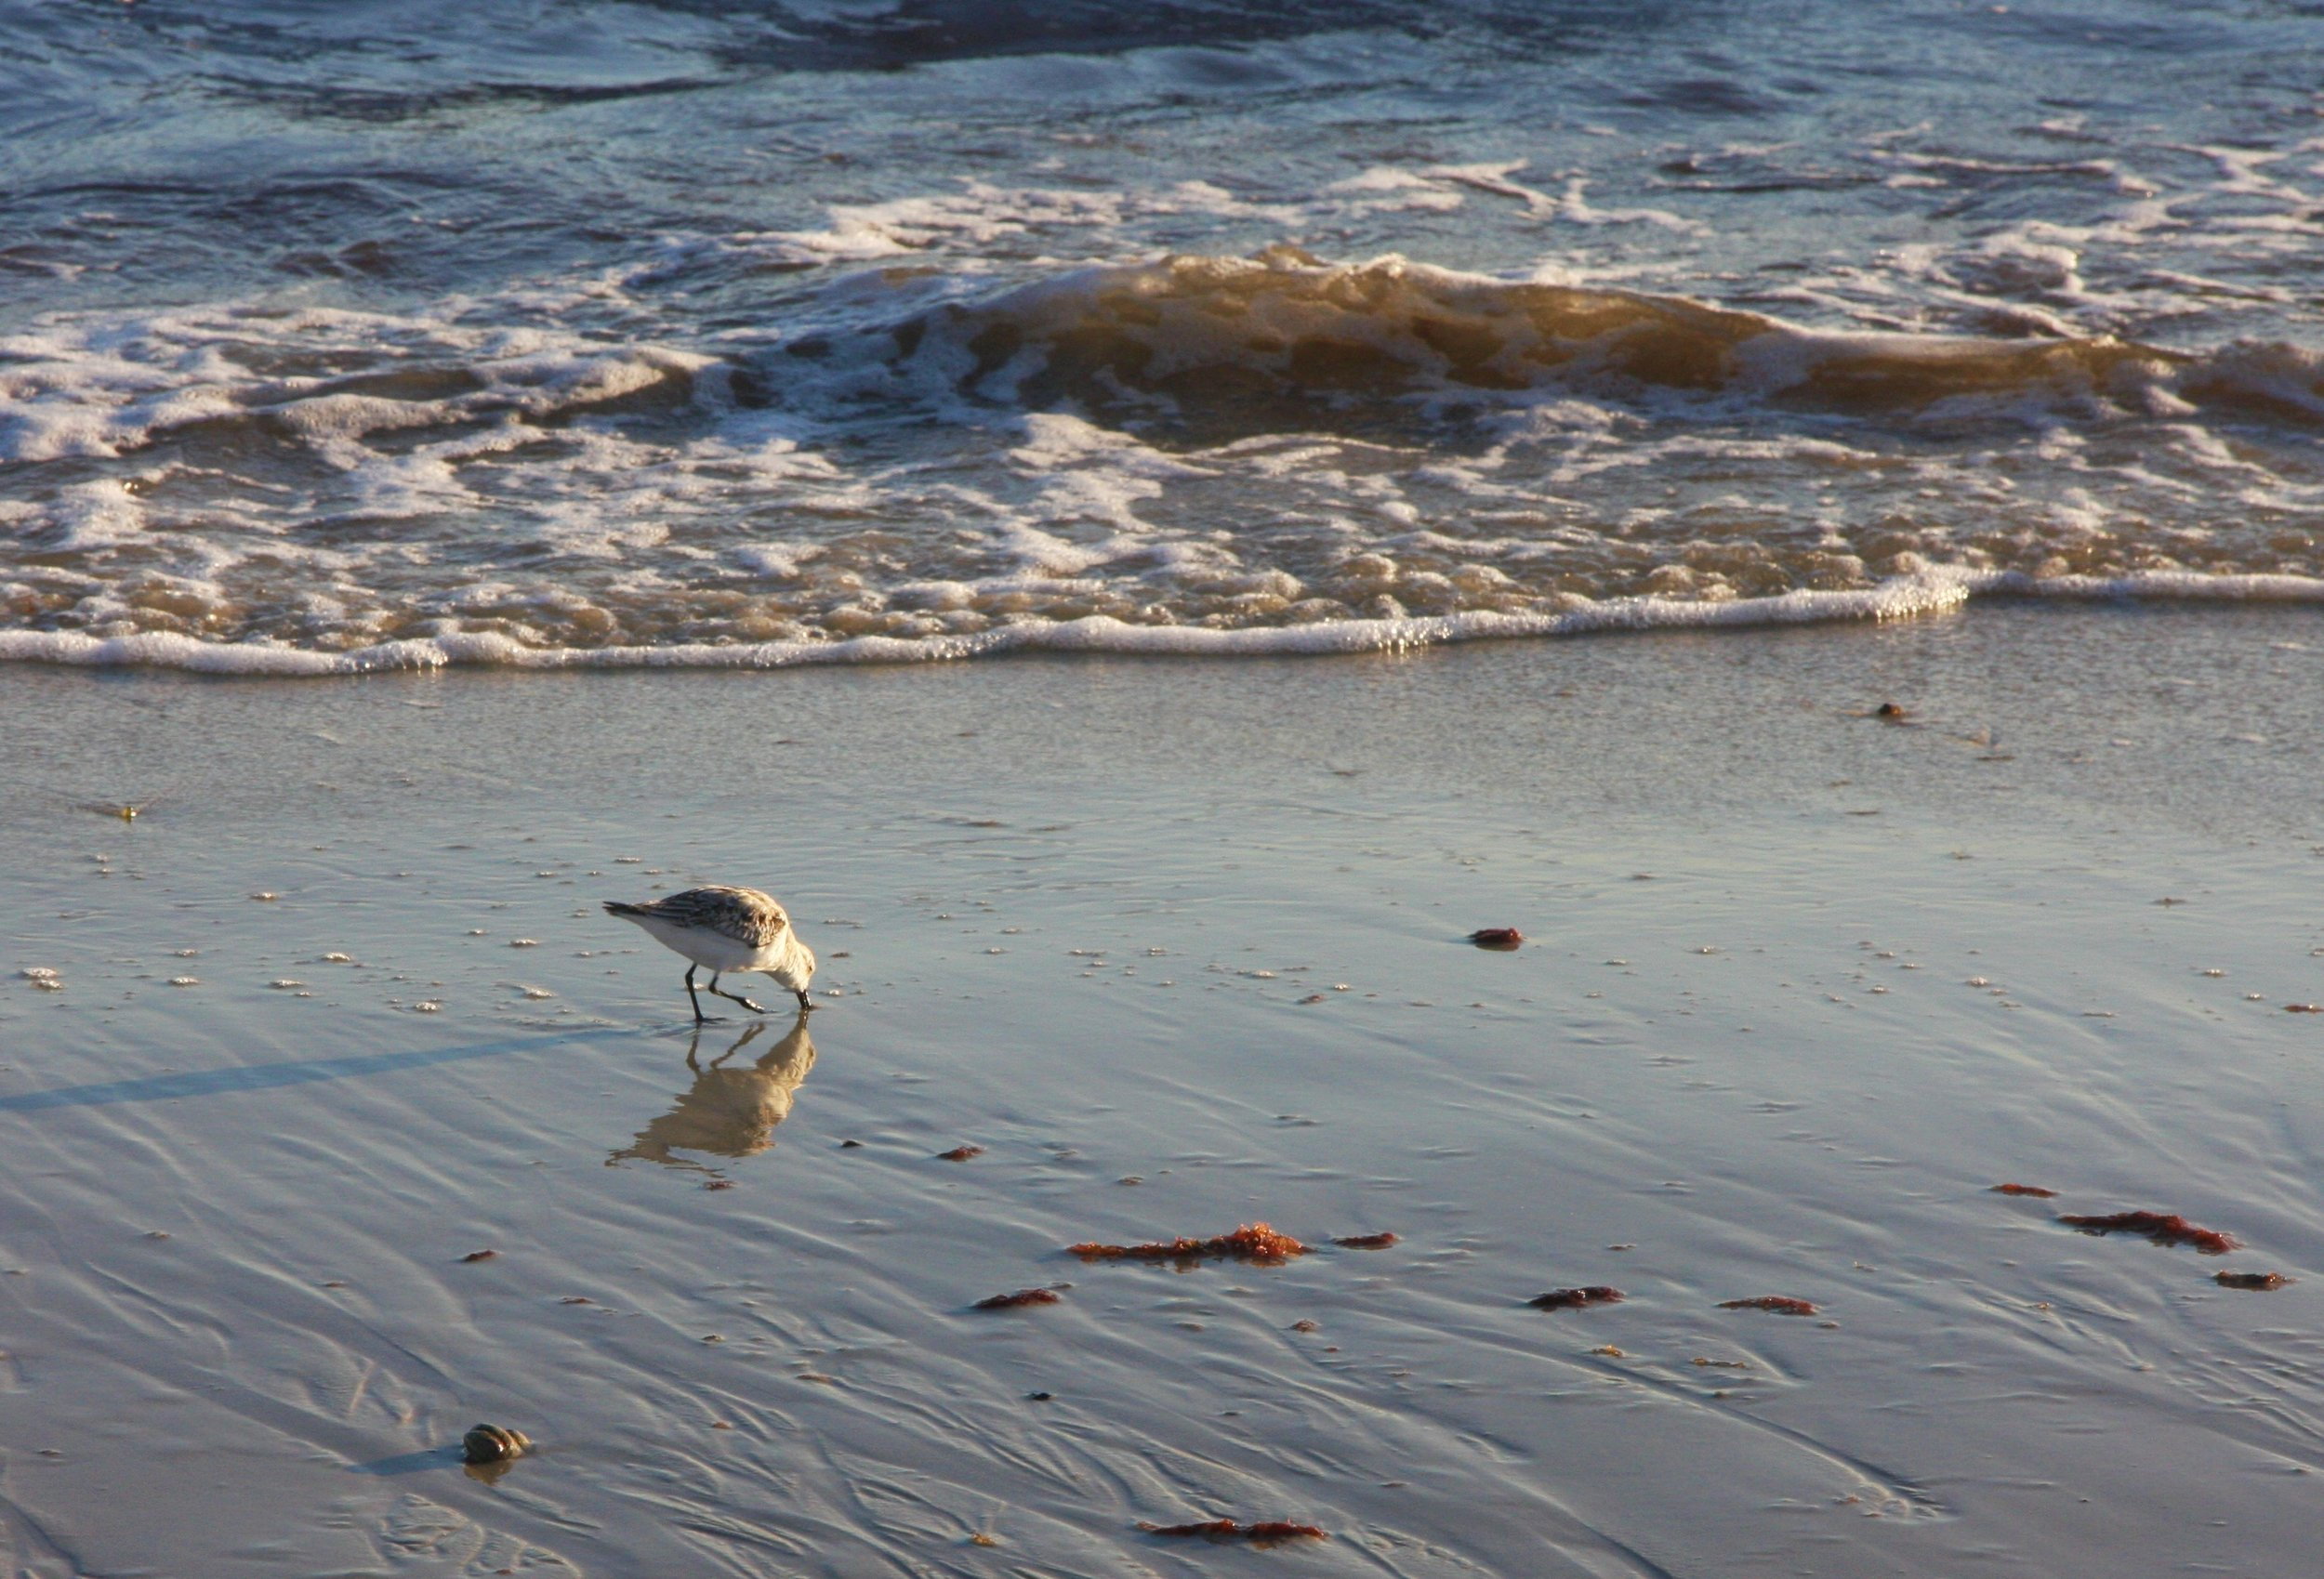 Seagull scavenging on earle road beach.JPG